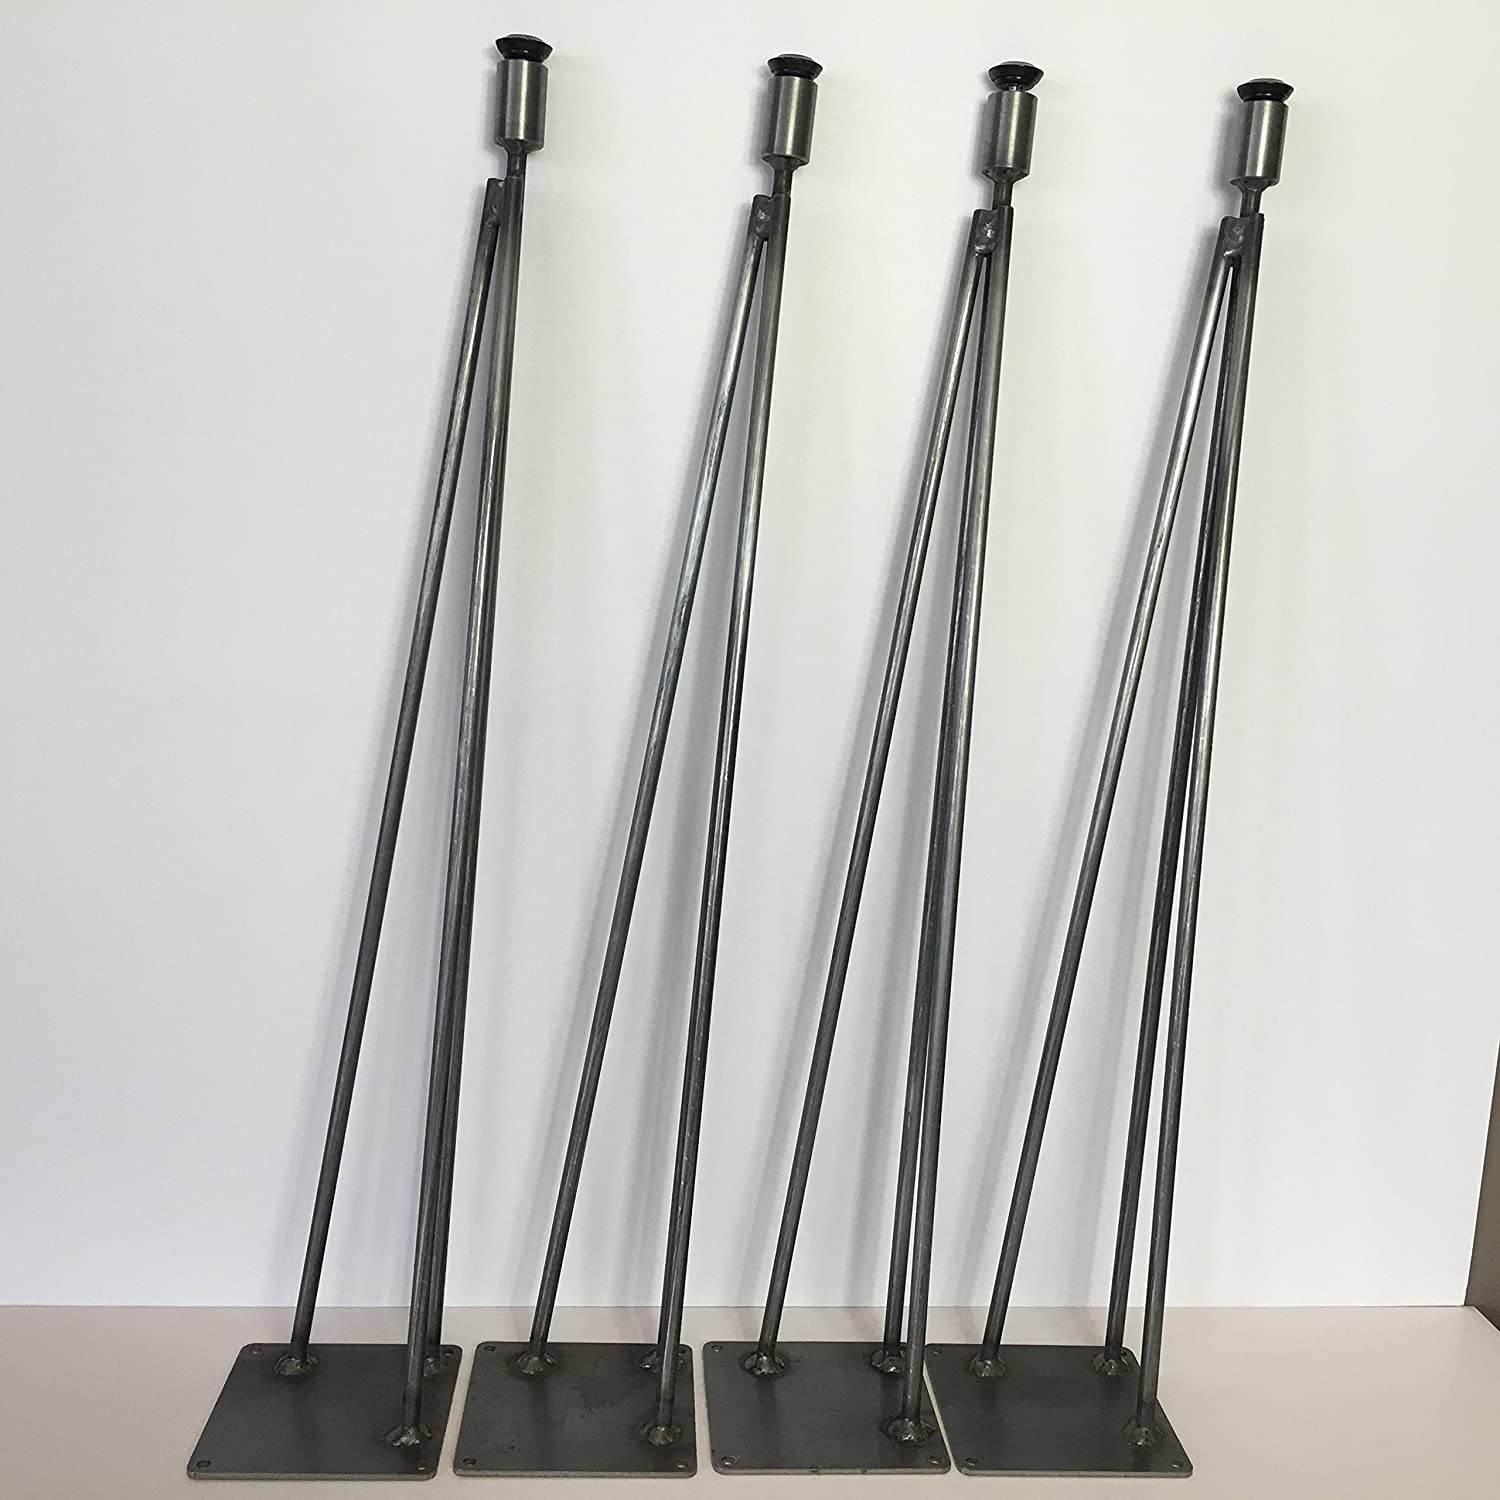 Amazon.com: Hairpin Leg, Metal Table Leg Set Of 4 Modern Industrial 3 Rod  Hairpin Leg Base   Raw Steel   16 Inch High To 40 Inch High   SHIPS FREE  WITHIN 48 ...